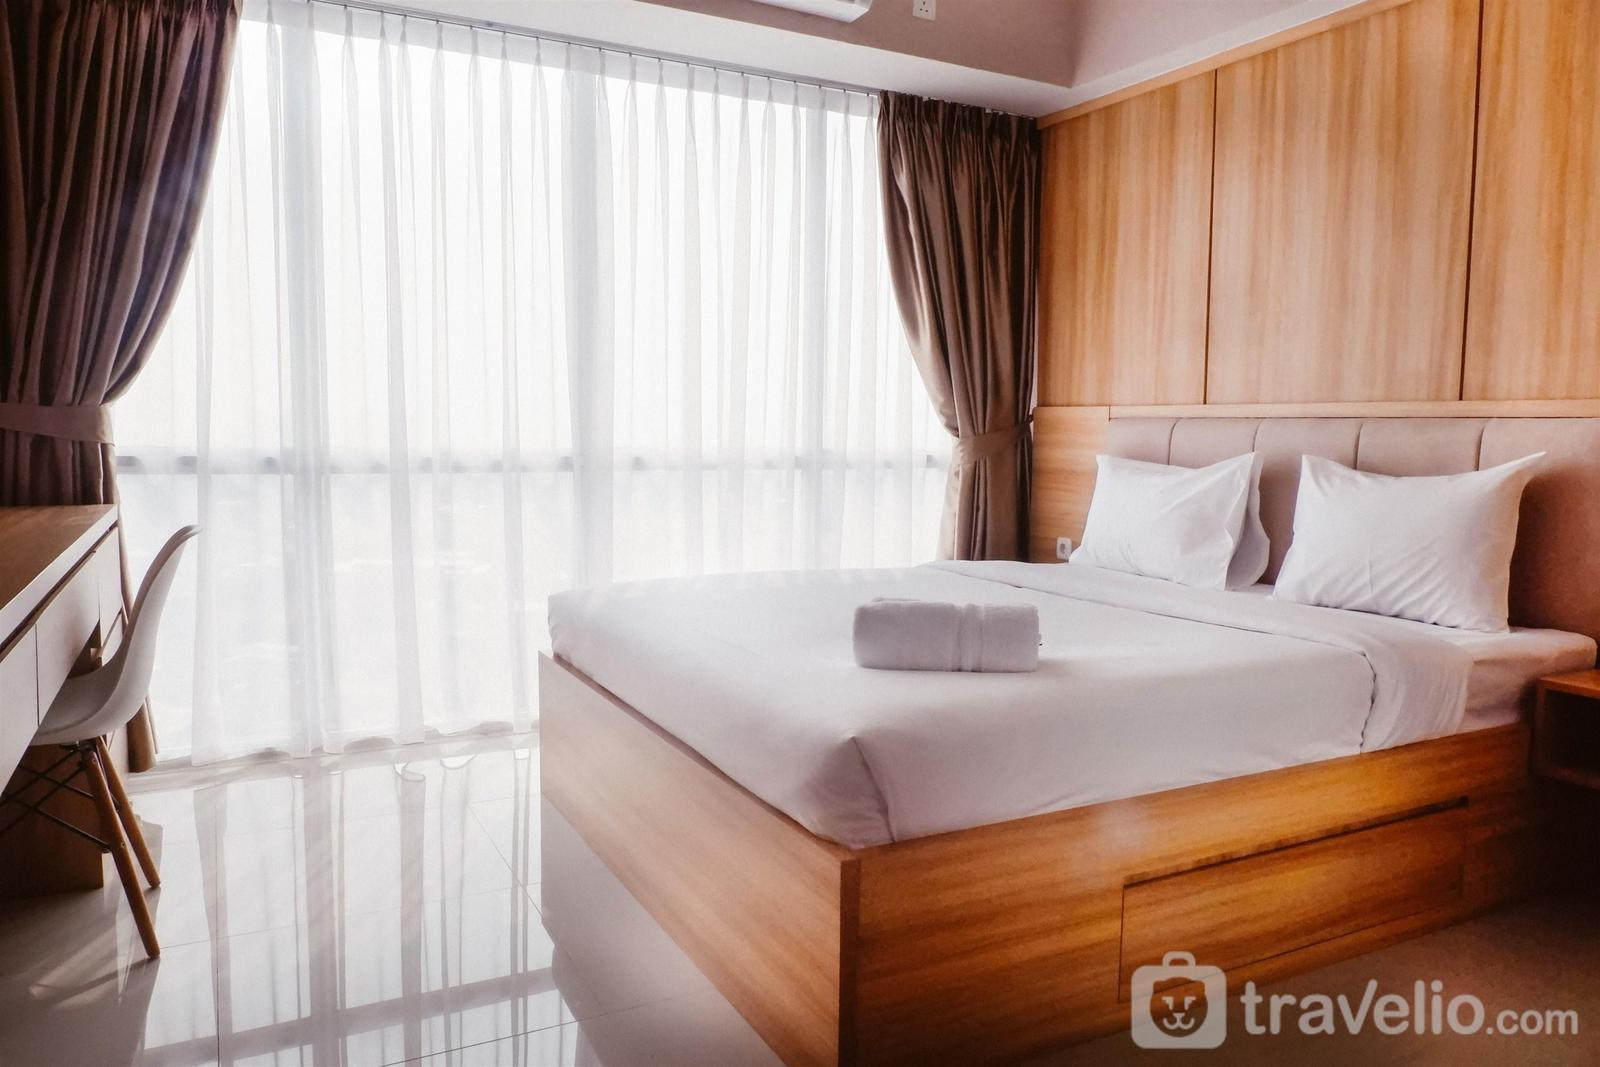 H Residence - Warm Interior 3BR  Apartment near MT Haryono and Cawang By Travelio